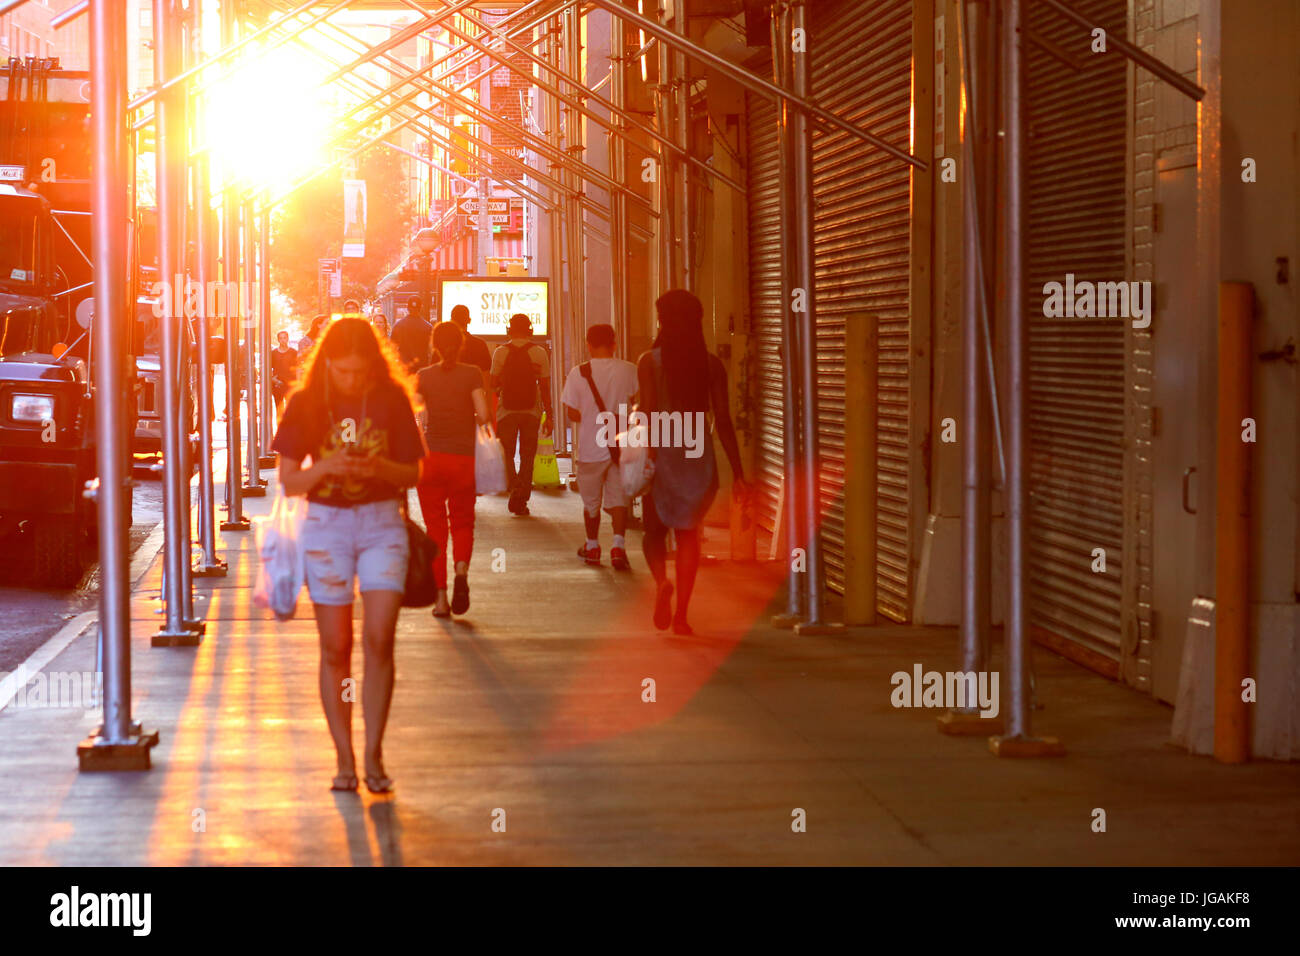 Summertime in the City - Stock Image